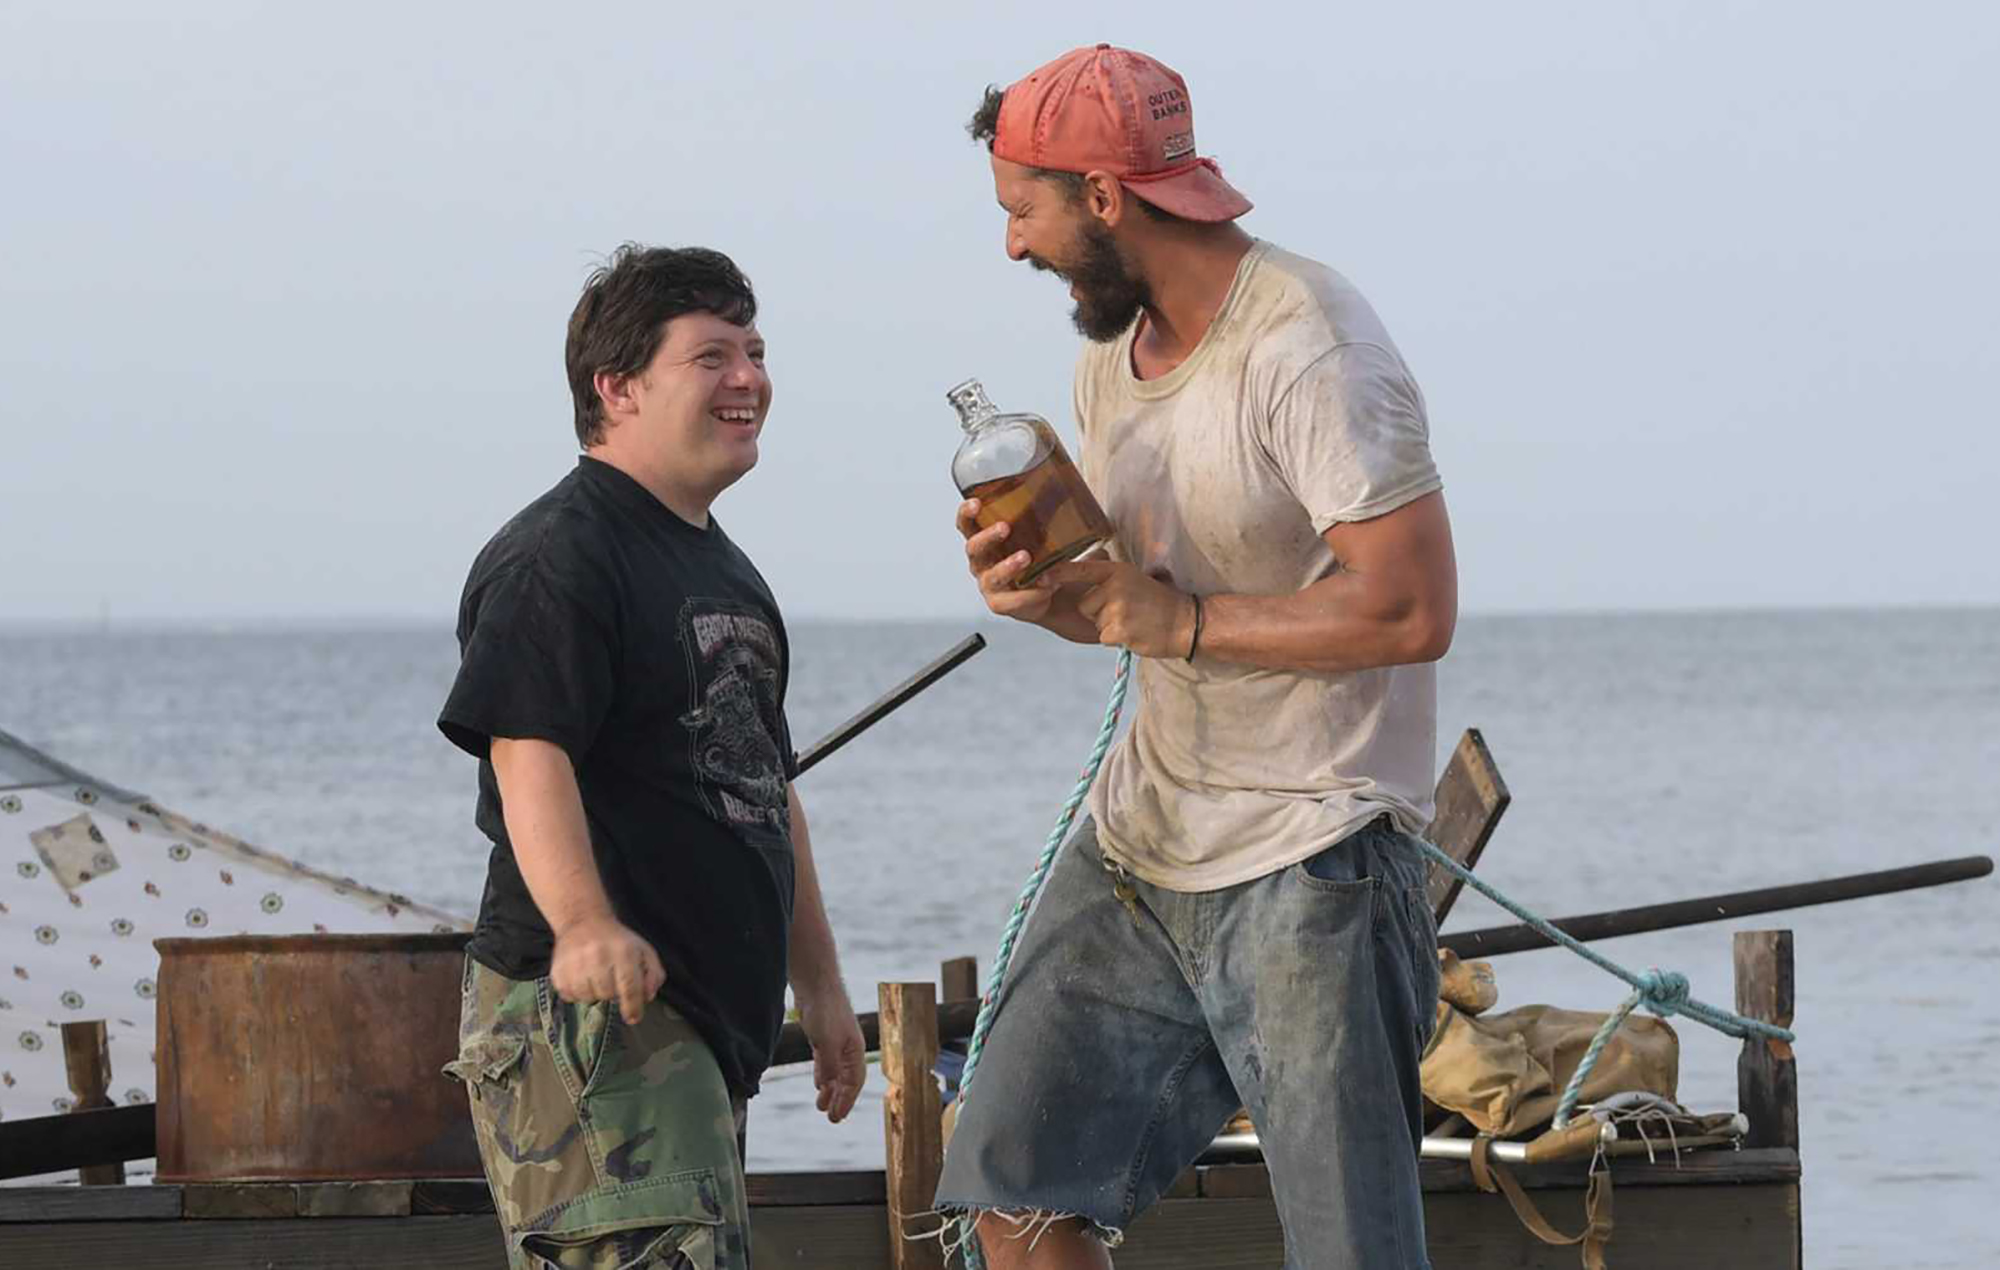 'The Peanut Butter Falcon' review: Shia LaBeouf shines in a wholesome indie about unlikely friendship